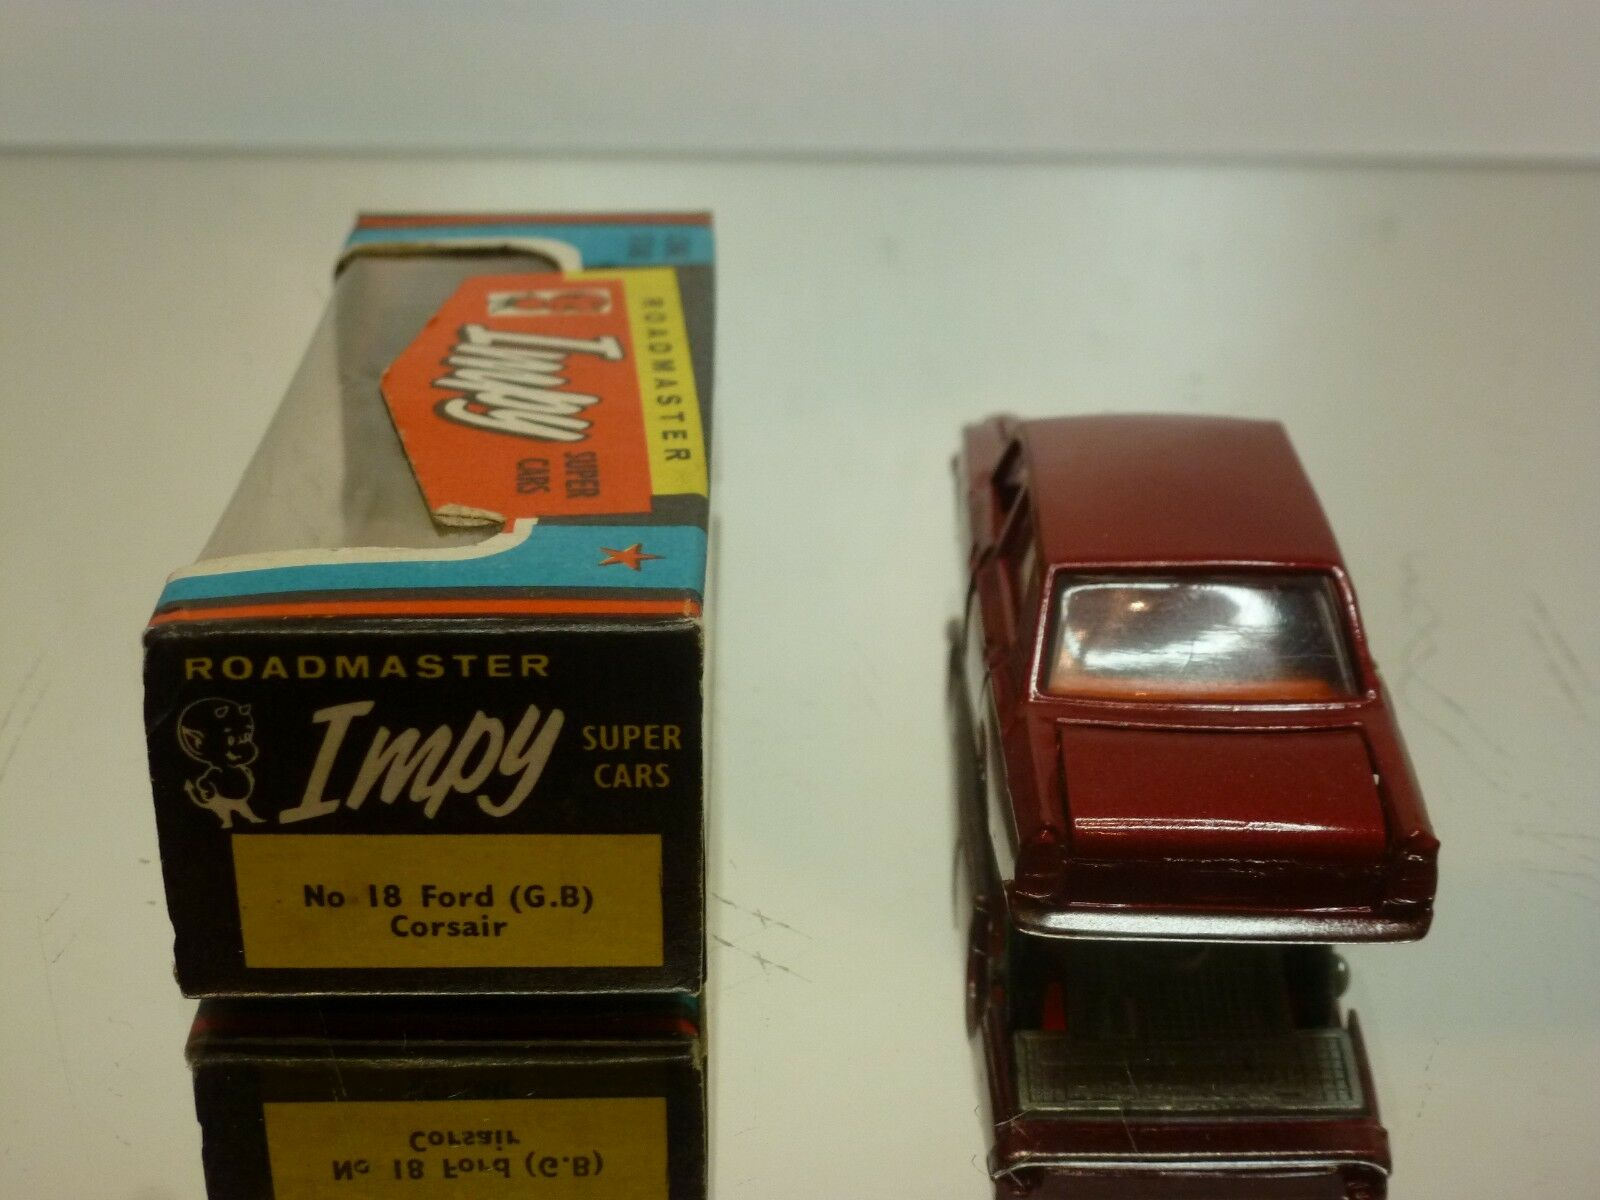 IMPY LONE STAR ROADMASTER FORD CORSAIR - - - RED 1 58 - VERY GOOD IN BOX bef0a0